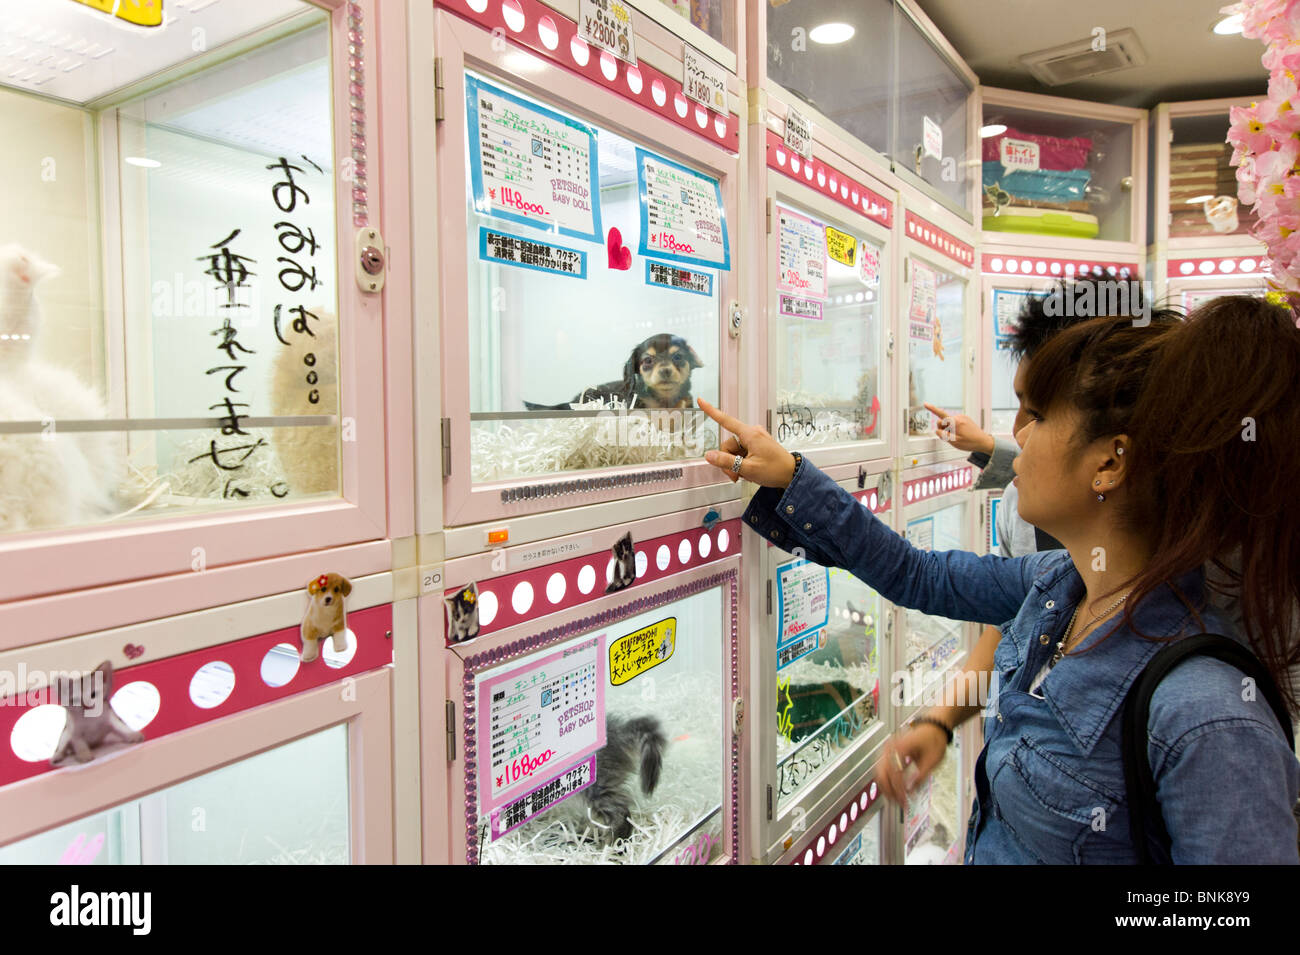 Puppies For Sale In Pet Shop Tokyo Japan Stock Photo 30542269 Alamy